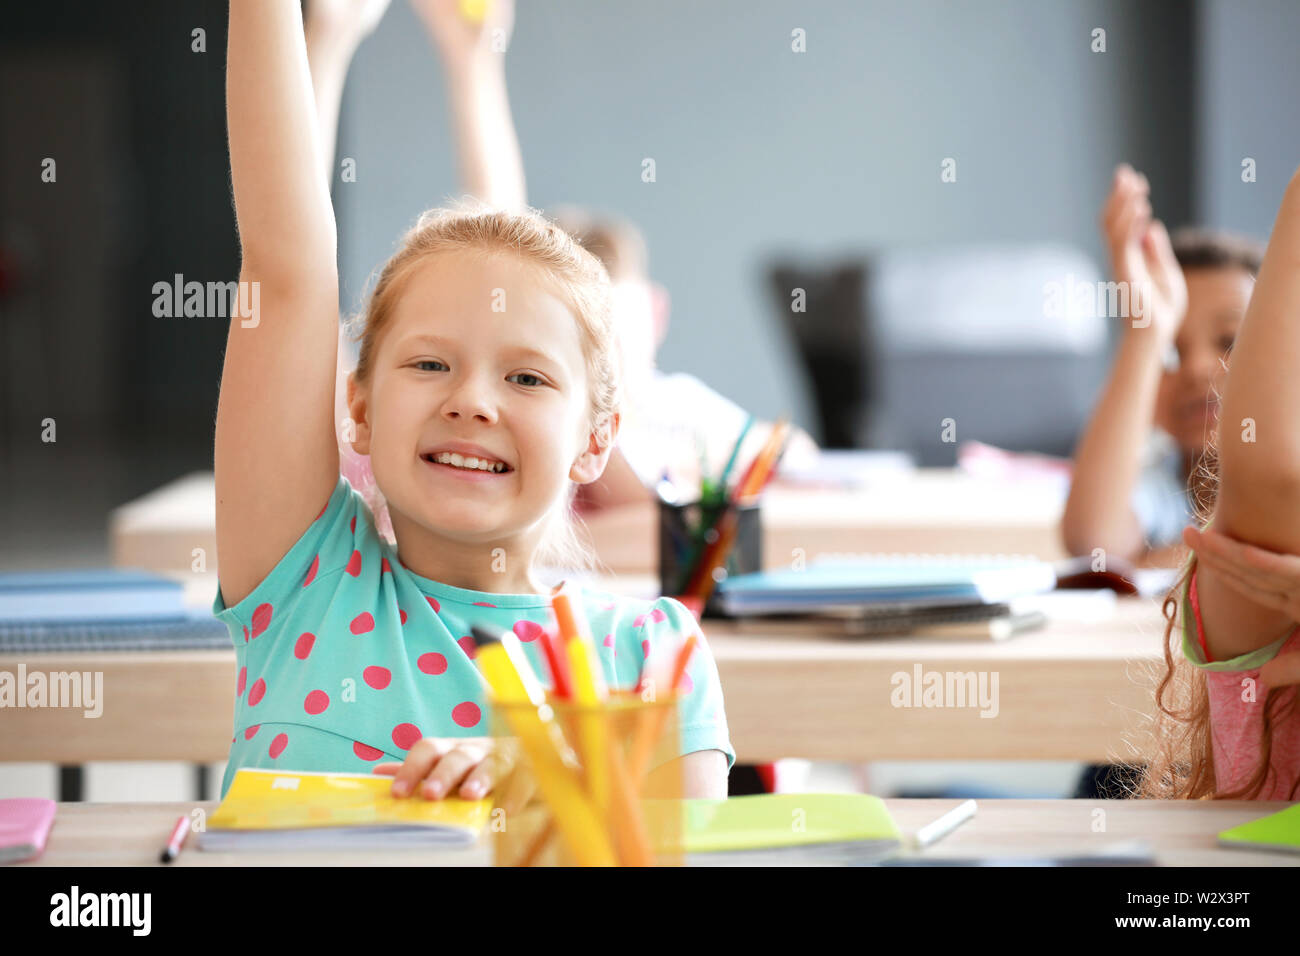 Cute little girl raising hand during lesson in classroom - Stock Image